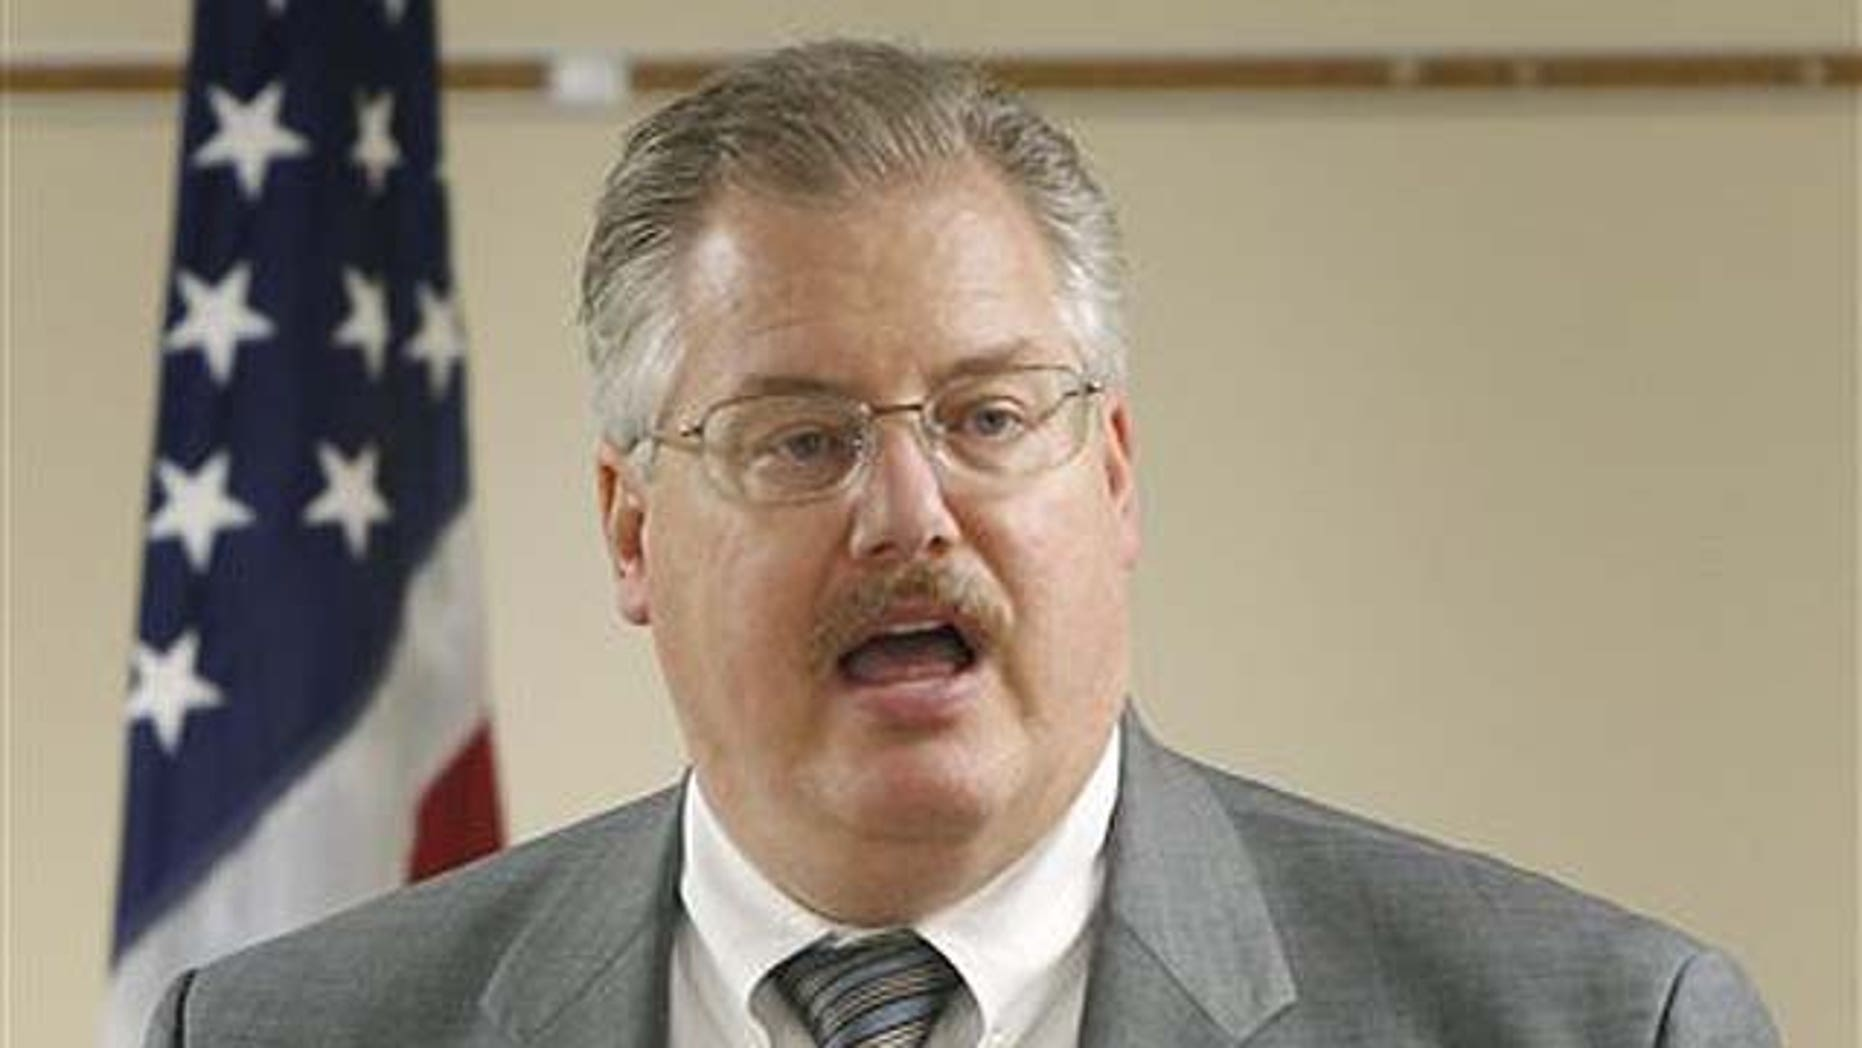 """Sept. 17:  Calumet County Dist. Atty. Ken Kratz, reads from a prepared statement, announcing that he will not be stepping down from his position during a news conference at the Calumet County Courthouse in Chilton, Wis. Kratz has shown in the two days since acknowledging he sent 30 text messages in three days to the 26-year-old woman last October. In one, he asked whether she was """"the kind of girl that likes secret contact with an older married elected DA."""""""